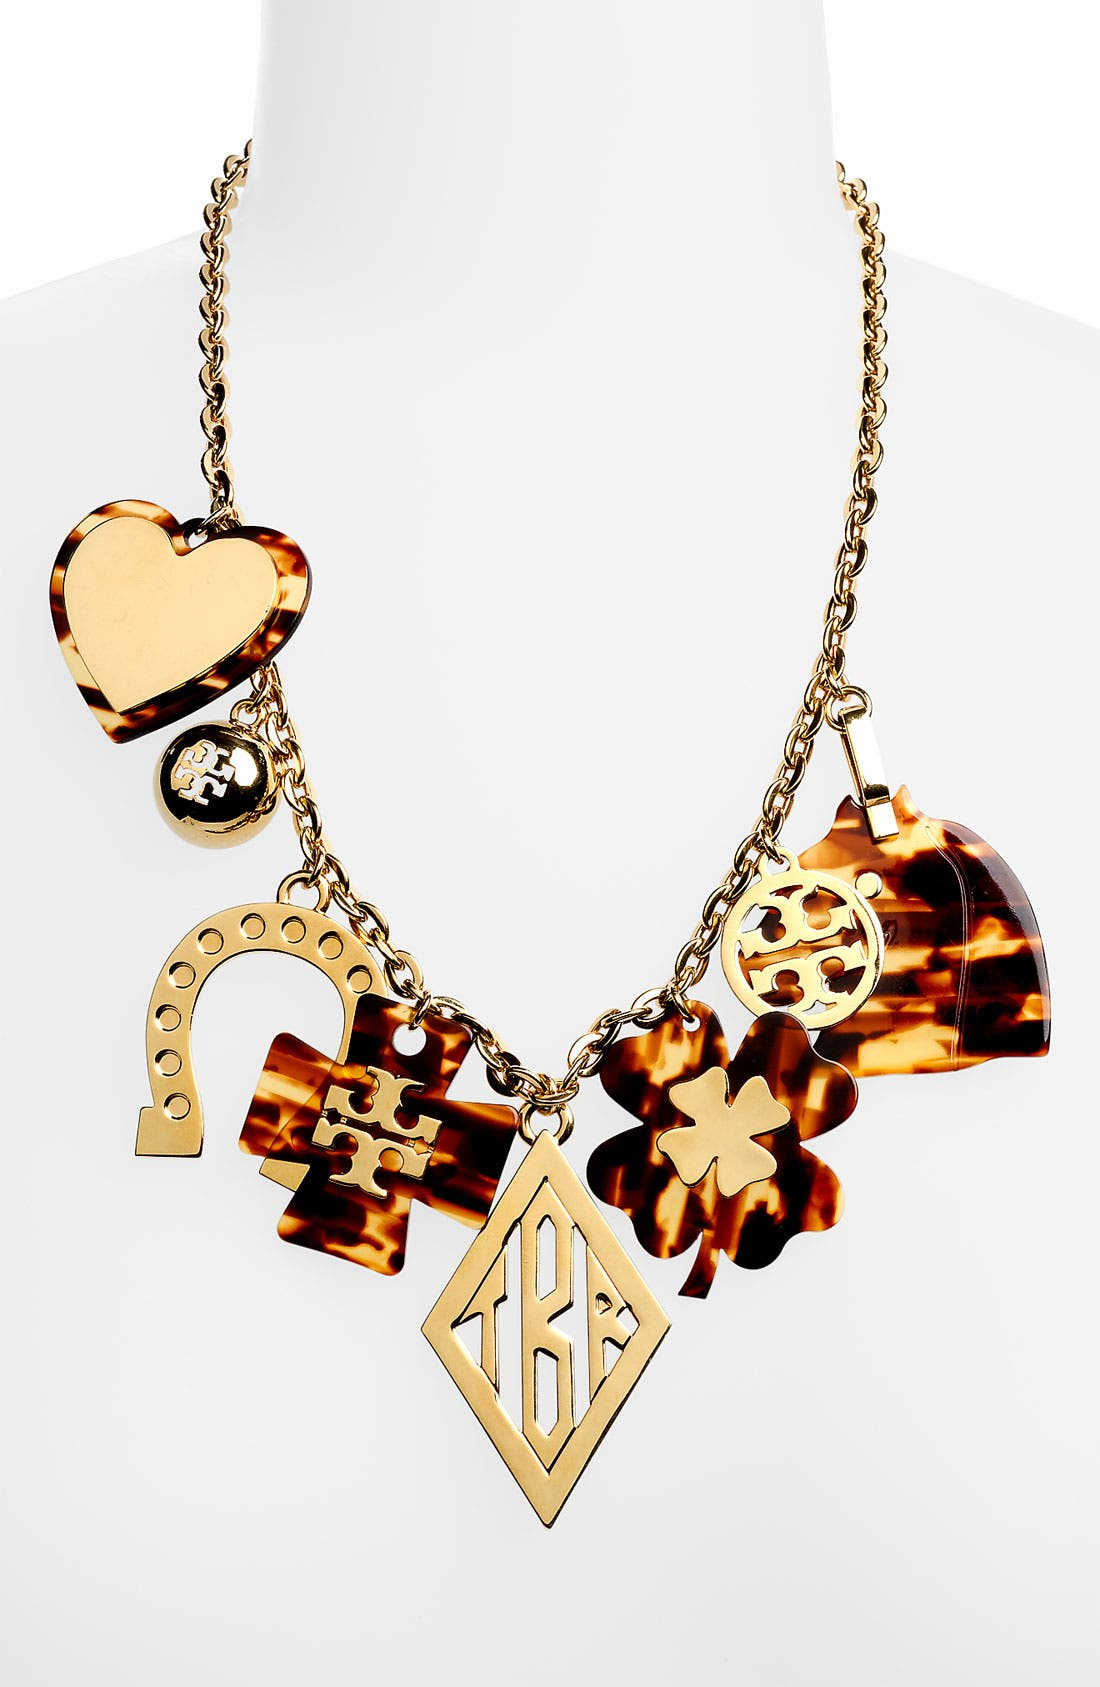 Alternate Image 1 Selected - Tory Burch 'Tilsim' Equestrian Charm Necklace